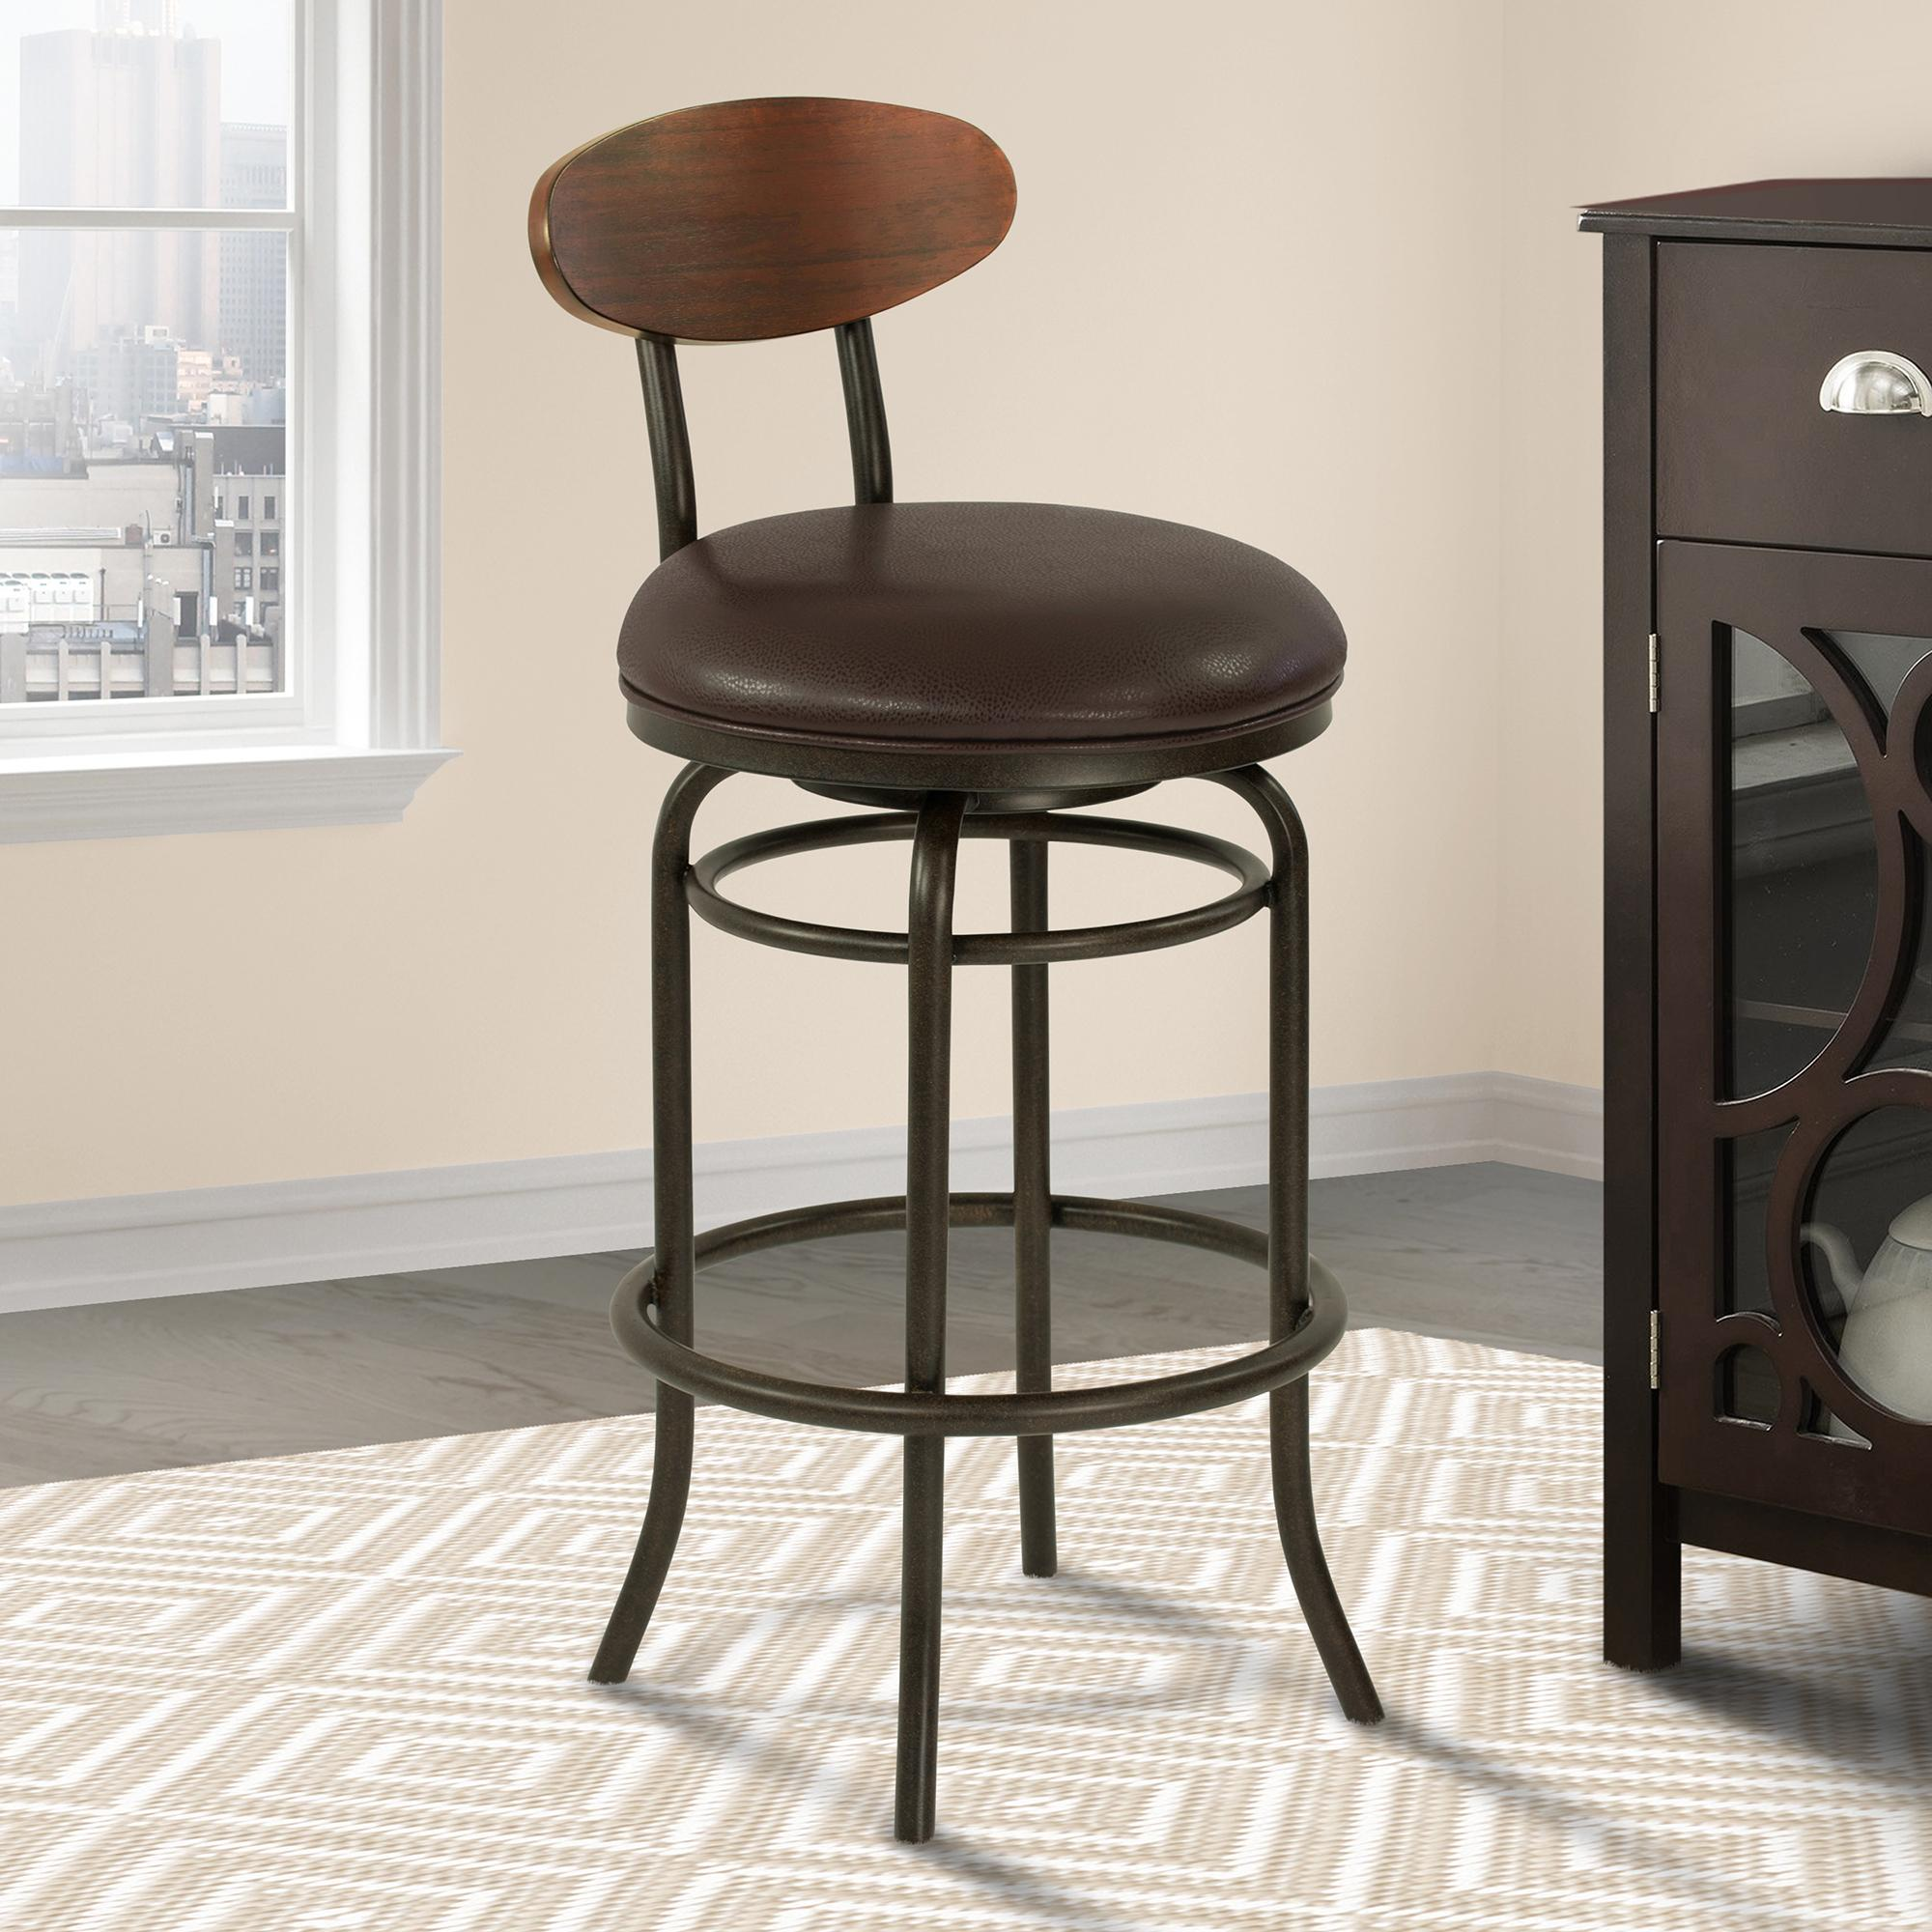 Armen Living Davis Mid-Century 30' Bar Height Metal Swivel Barstool in Auburn Bay Finish with Ford Brown Leather and Sedona Wood Back